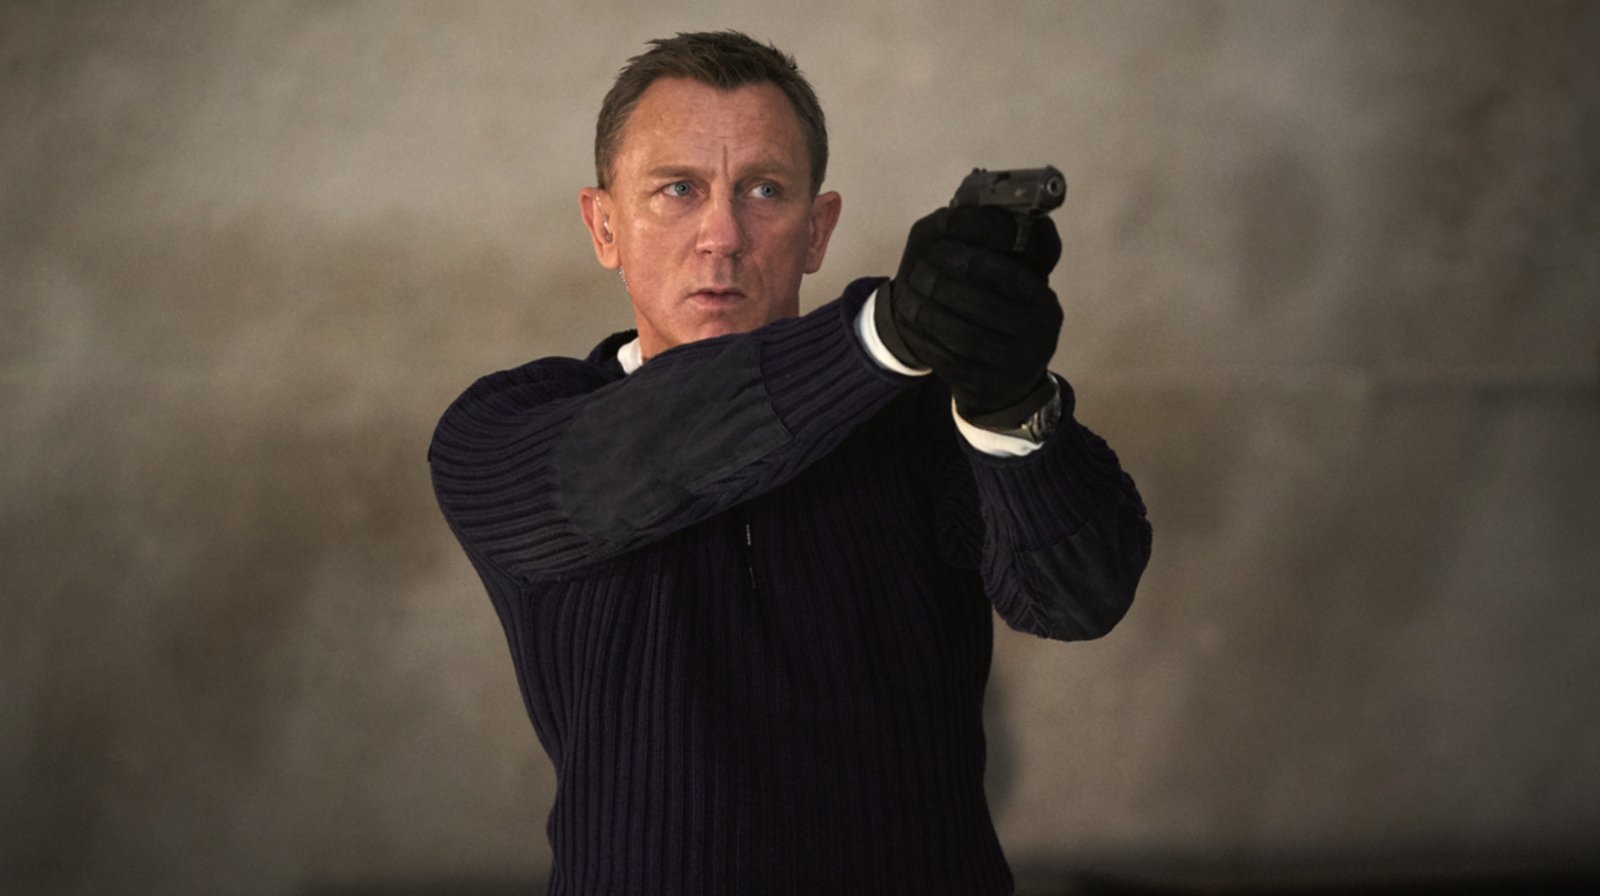 New trailer for James Bond's No Time to Die released